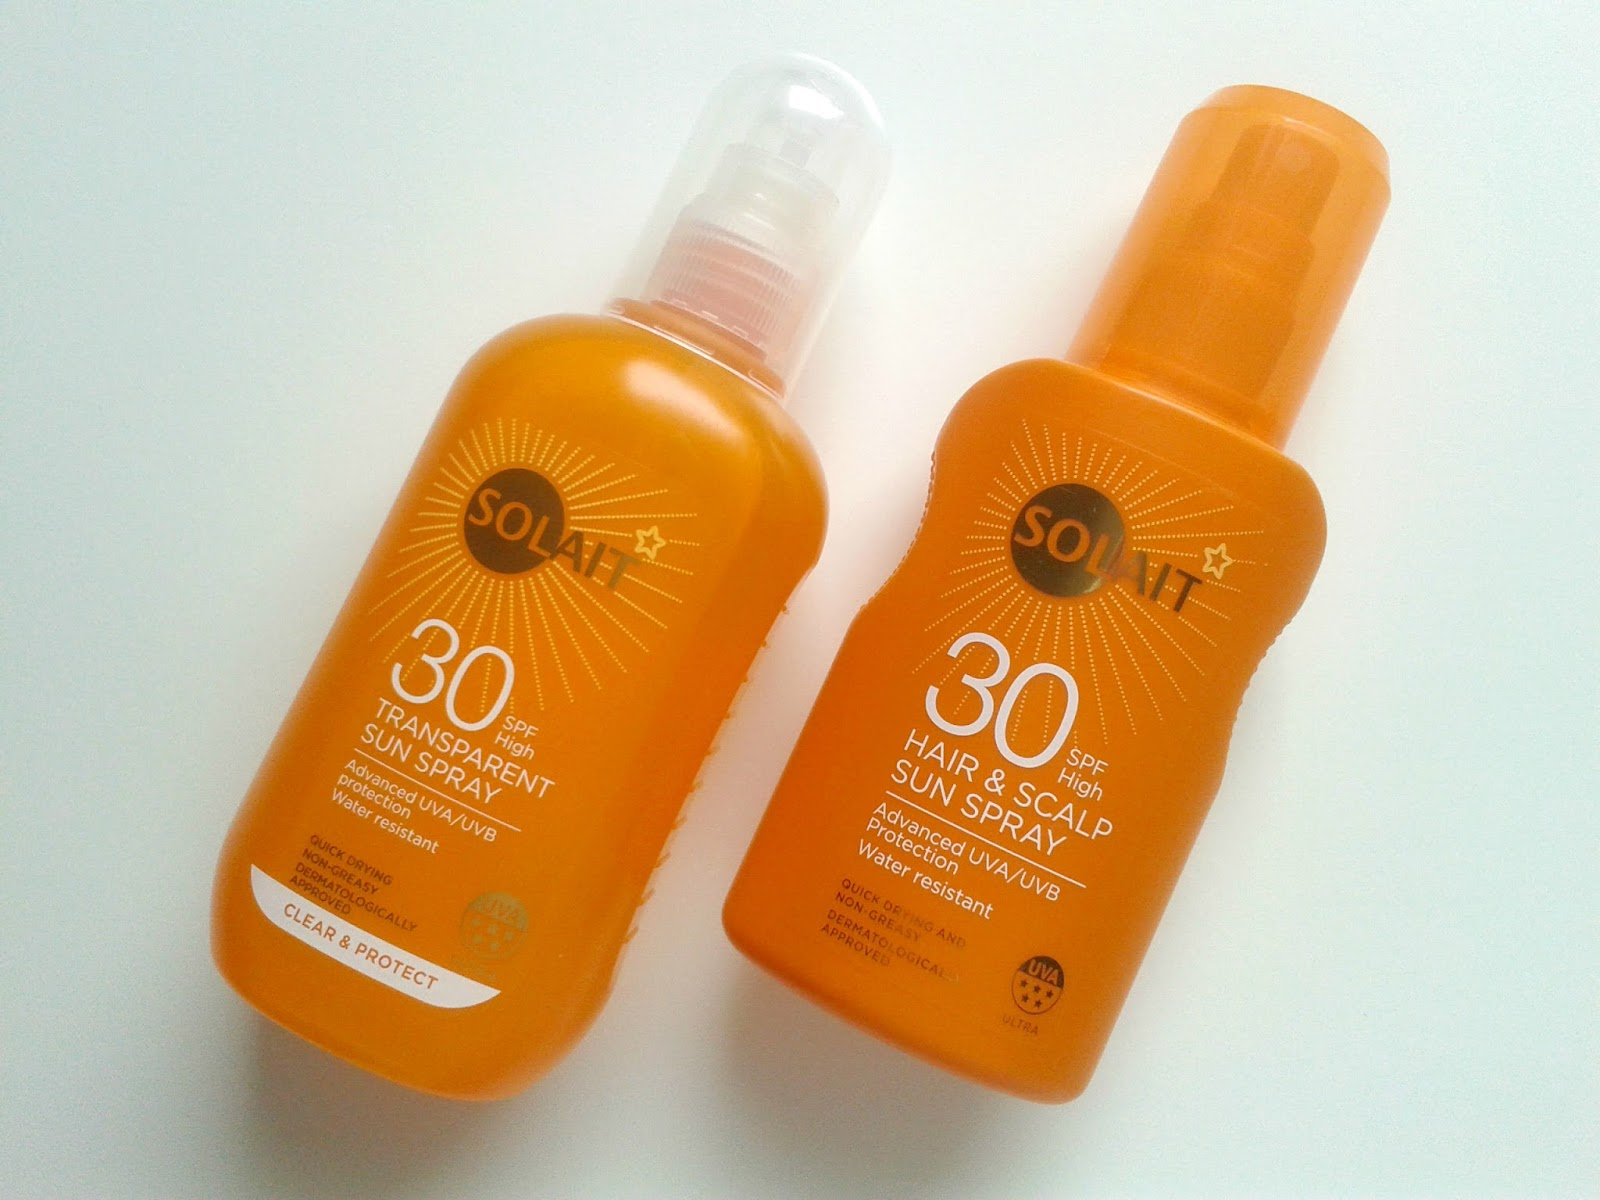 Superdrug Solait Hair & Scalp Sun Spray SPF 30 Superdrug Solait Wet Skin SPF 30 Beauty Review